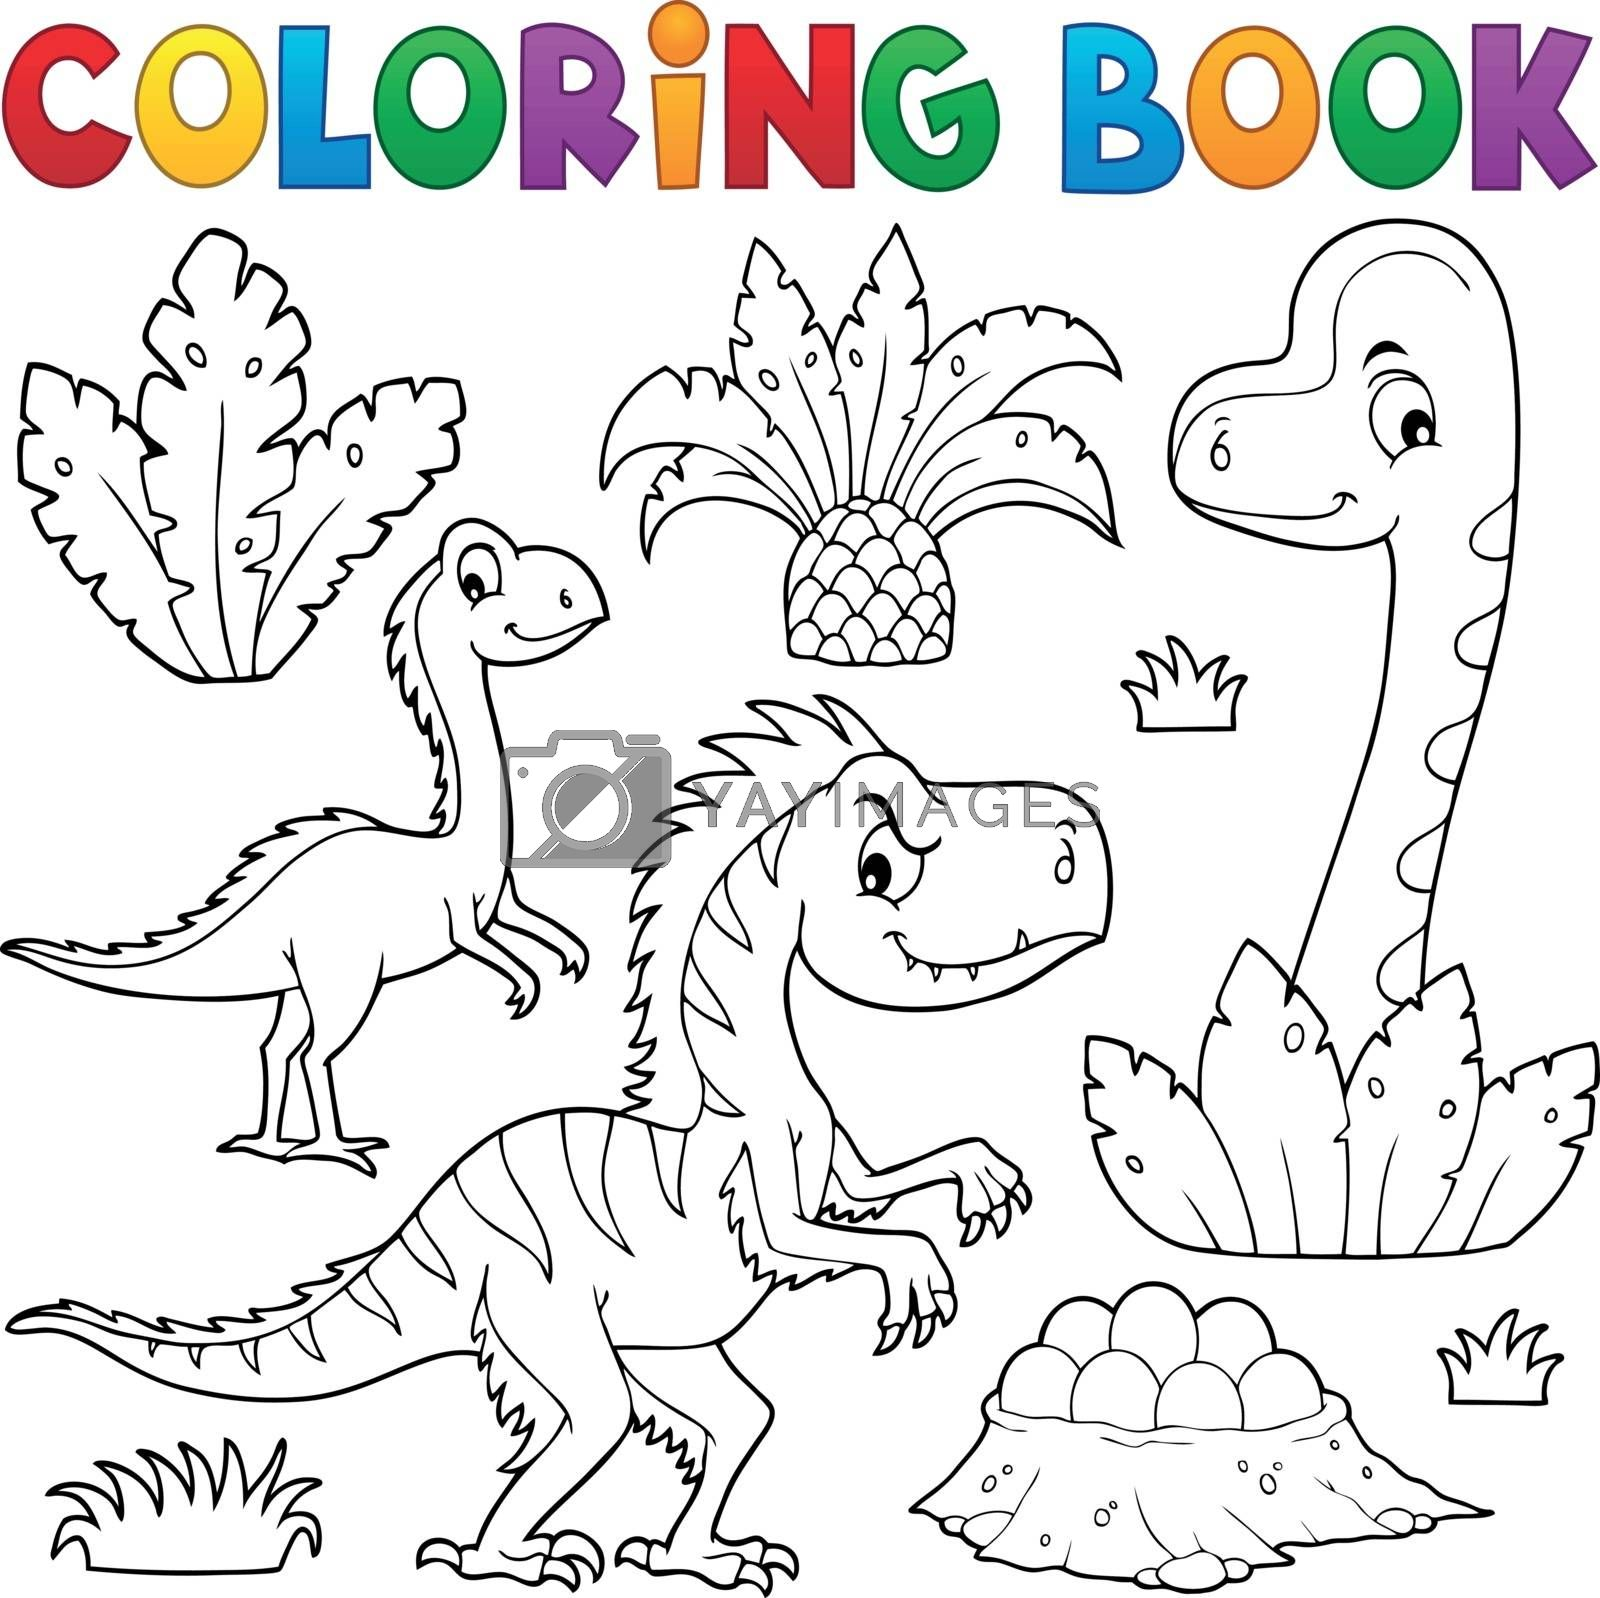 Coloring book dinosaur composition image 3 - eps10 vector illustration.